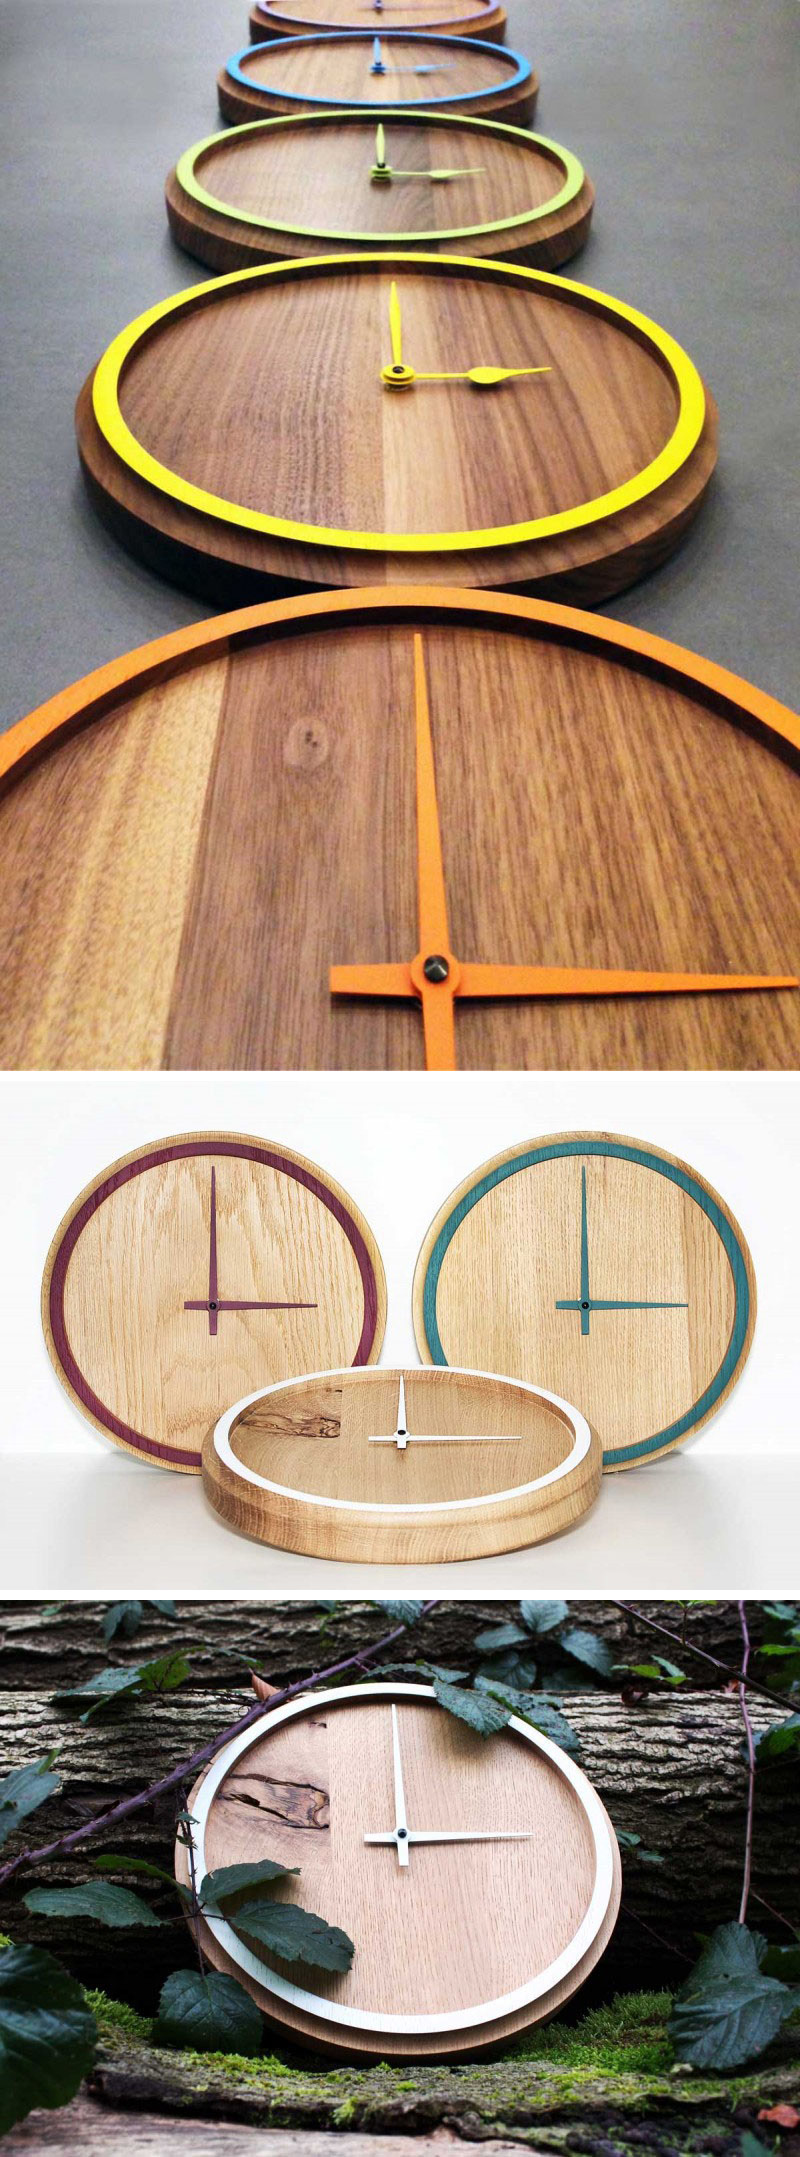 The hands of these solid wood clocks match the colorful rims to make sure the clocks are simple, fun, and modern. #ModernWoodClock #WallClock #ModernDecor #ModernClock